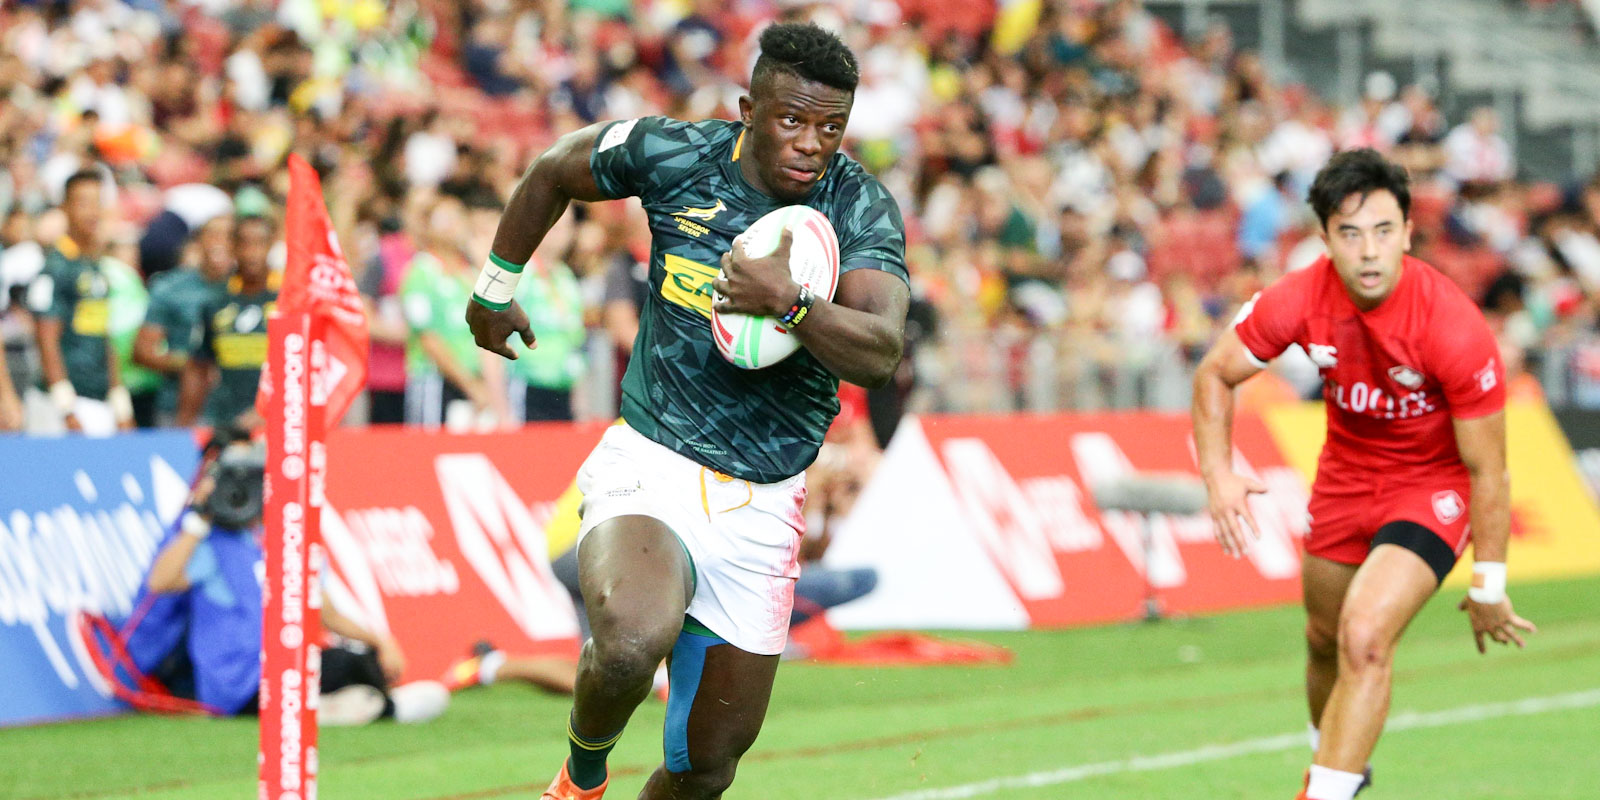 Young Blitzboks keen to contribute to sevens success - Sports Leo